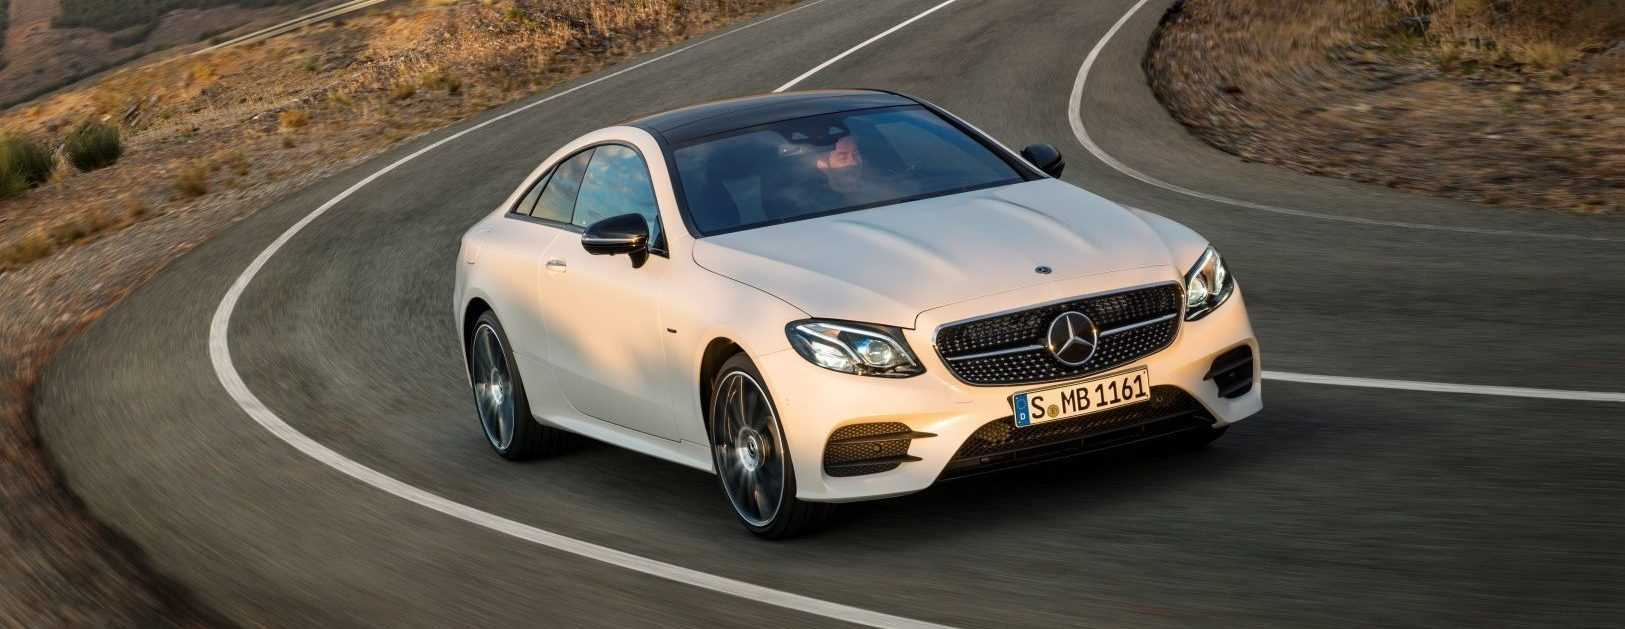 Mercedes-Benz E-Klasse Coupé 2017